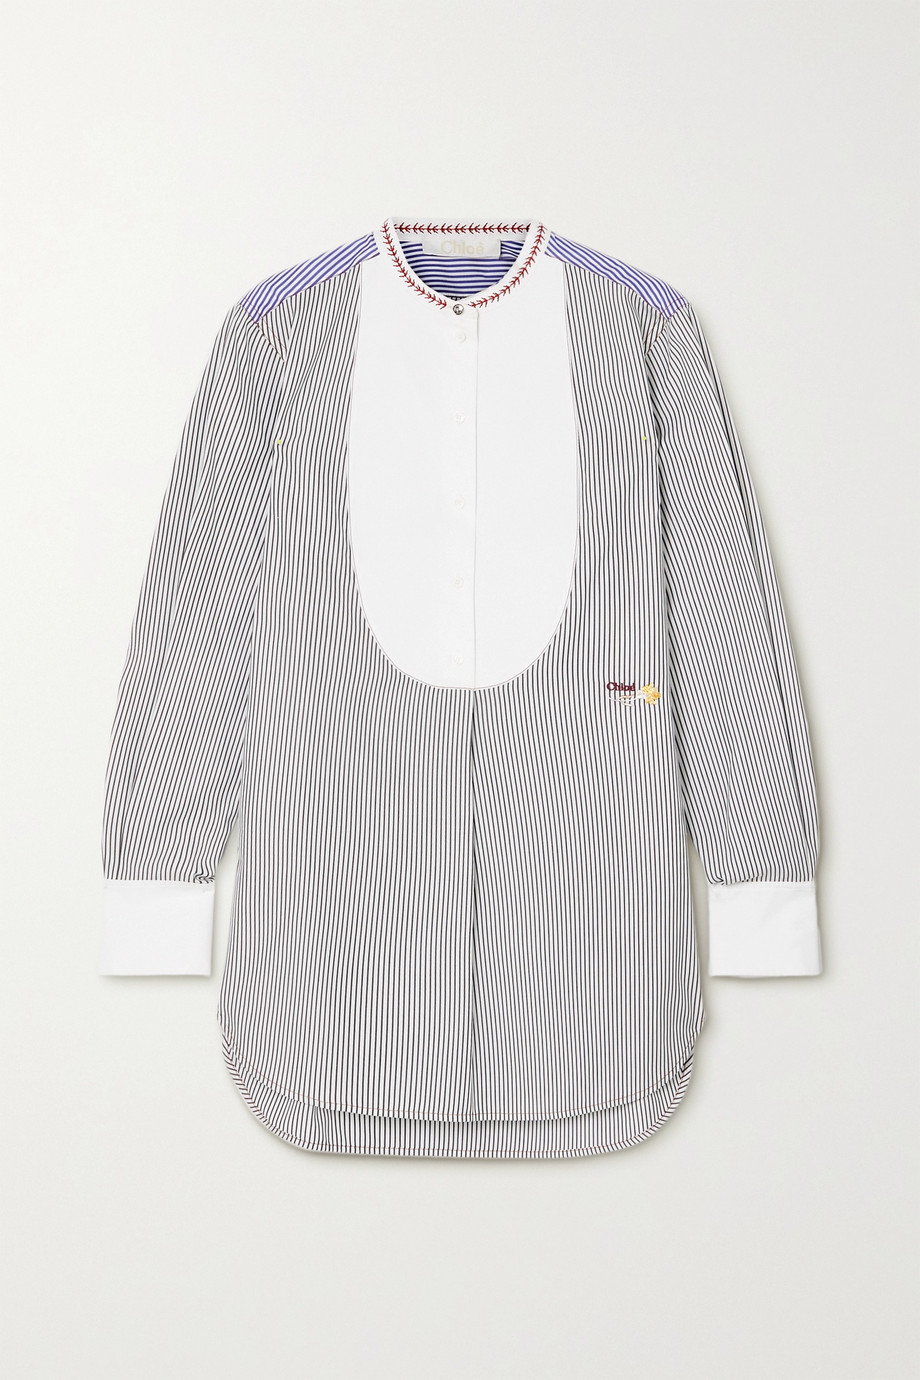 Chloé Embroidered striped cotton-poplin shirt